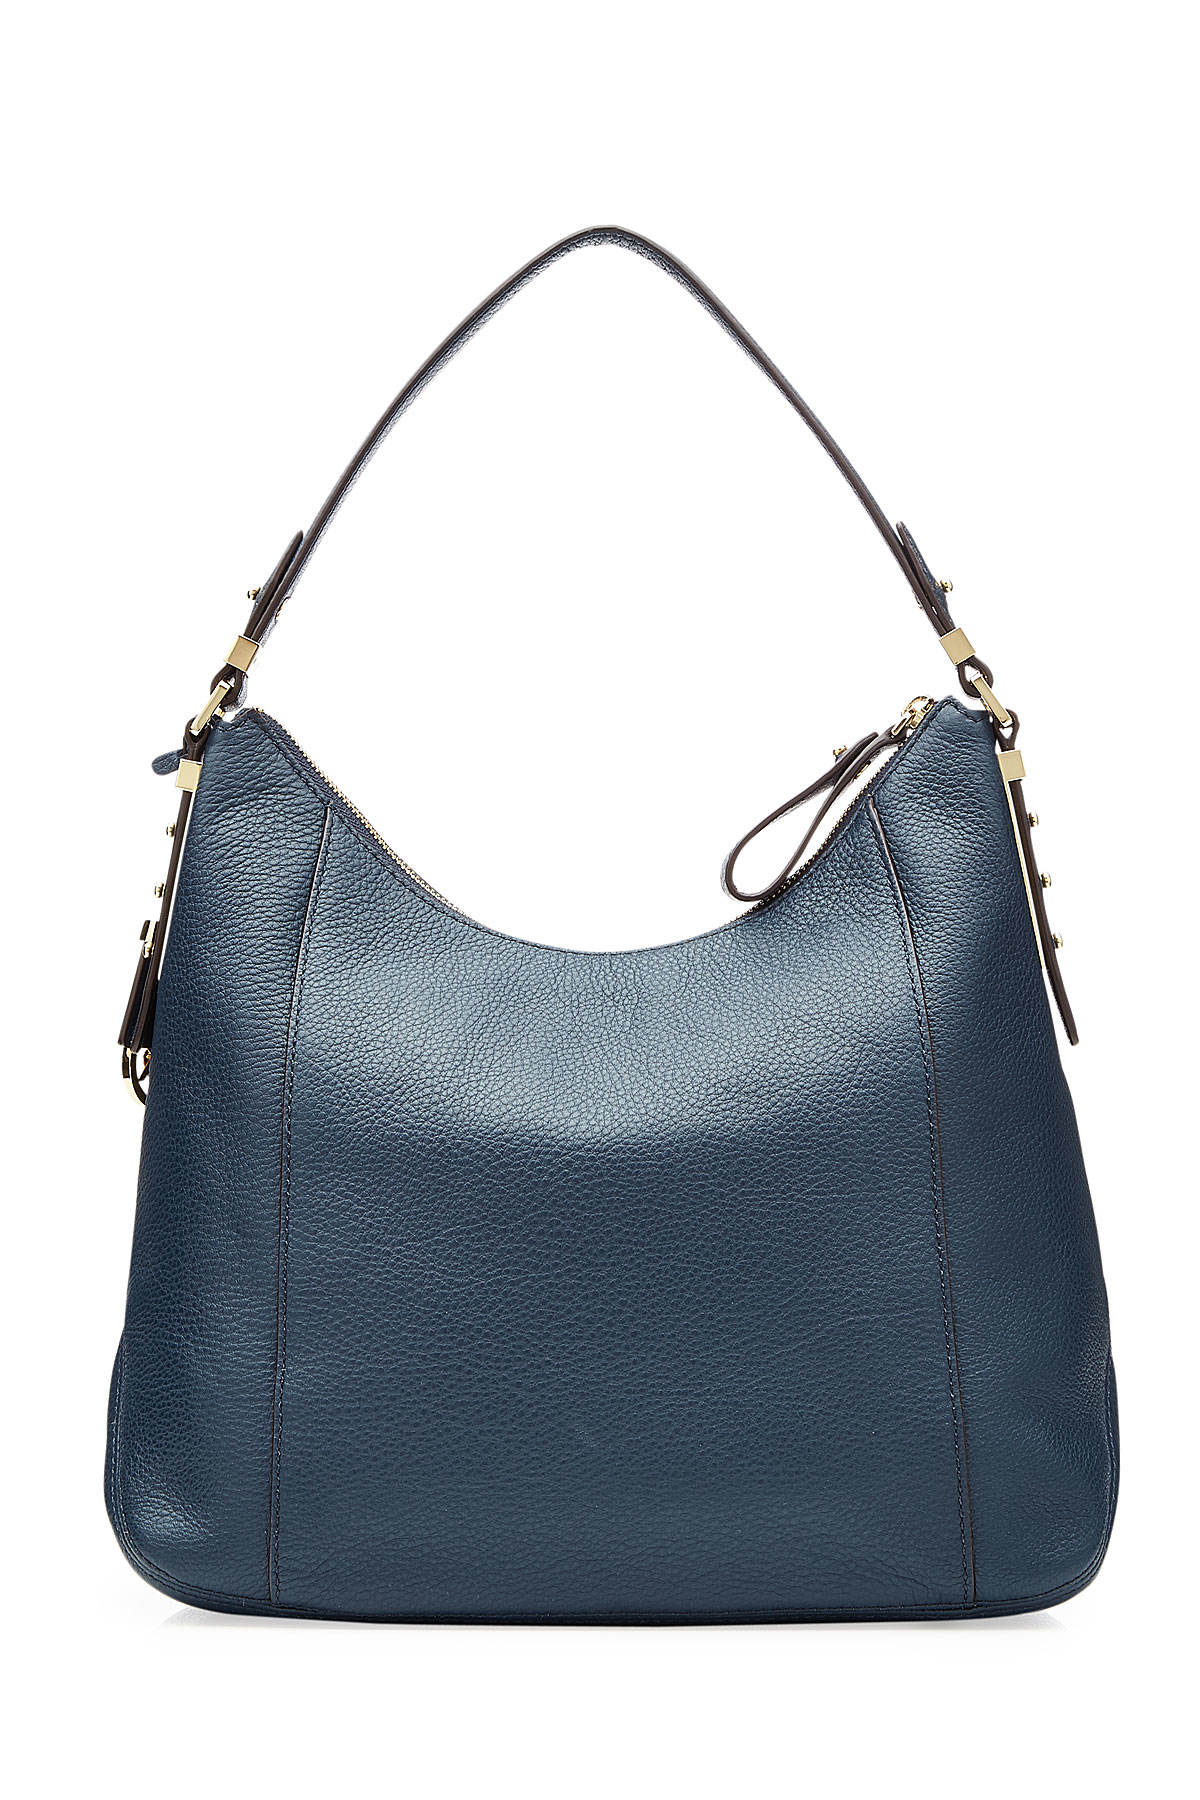 65924043eecb20 ... hot lyst michael michael kors leather bowery large hobo bag blue in  blue f5f53 b57b8